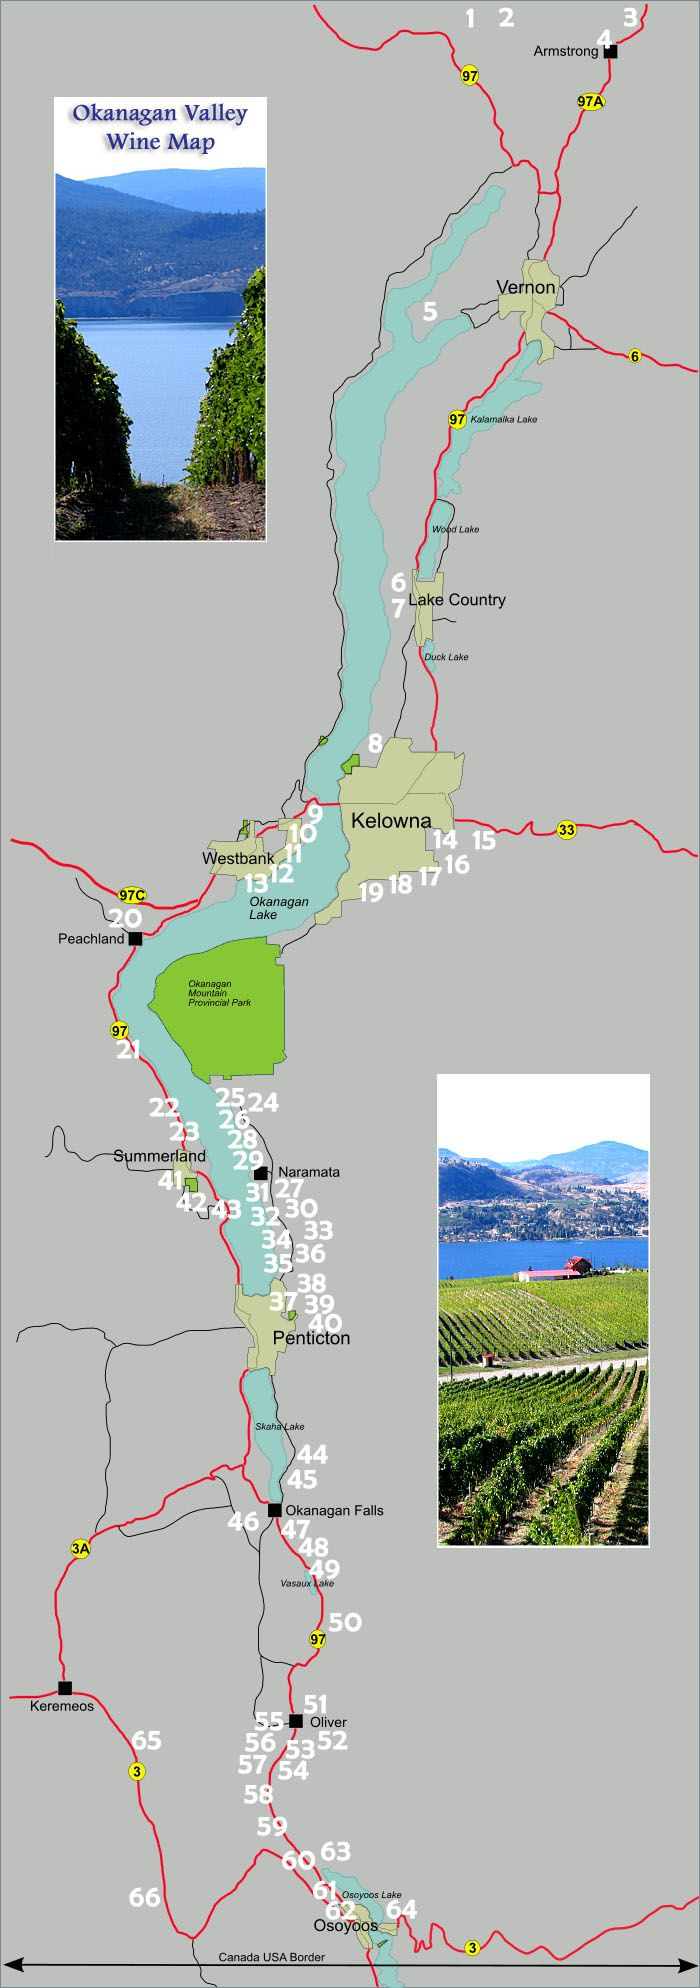 :: OKANAGAN.COM :: Okanagan Wine Map :: Okanagan Wineries, Wineries of Okanagan Valley, Kelowna, Penticton Osoyoos